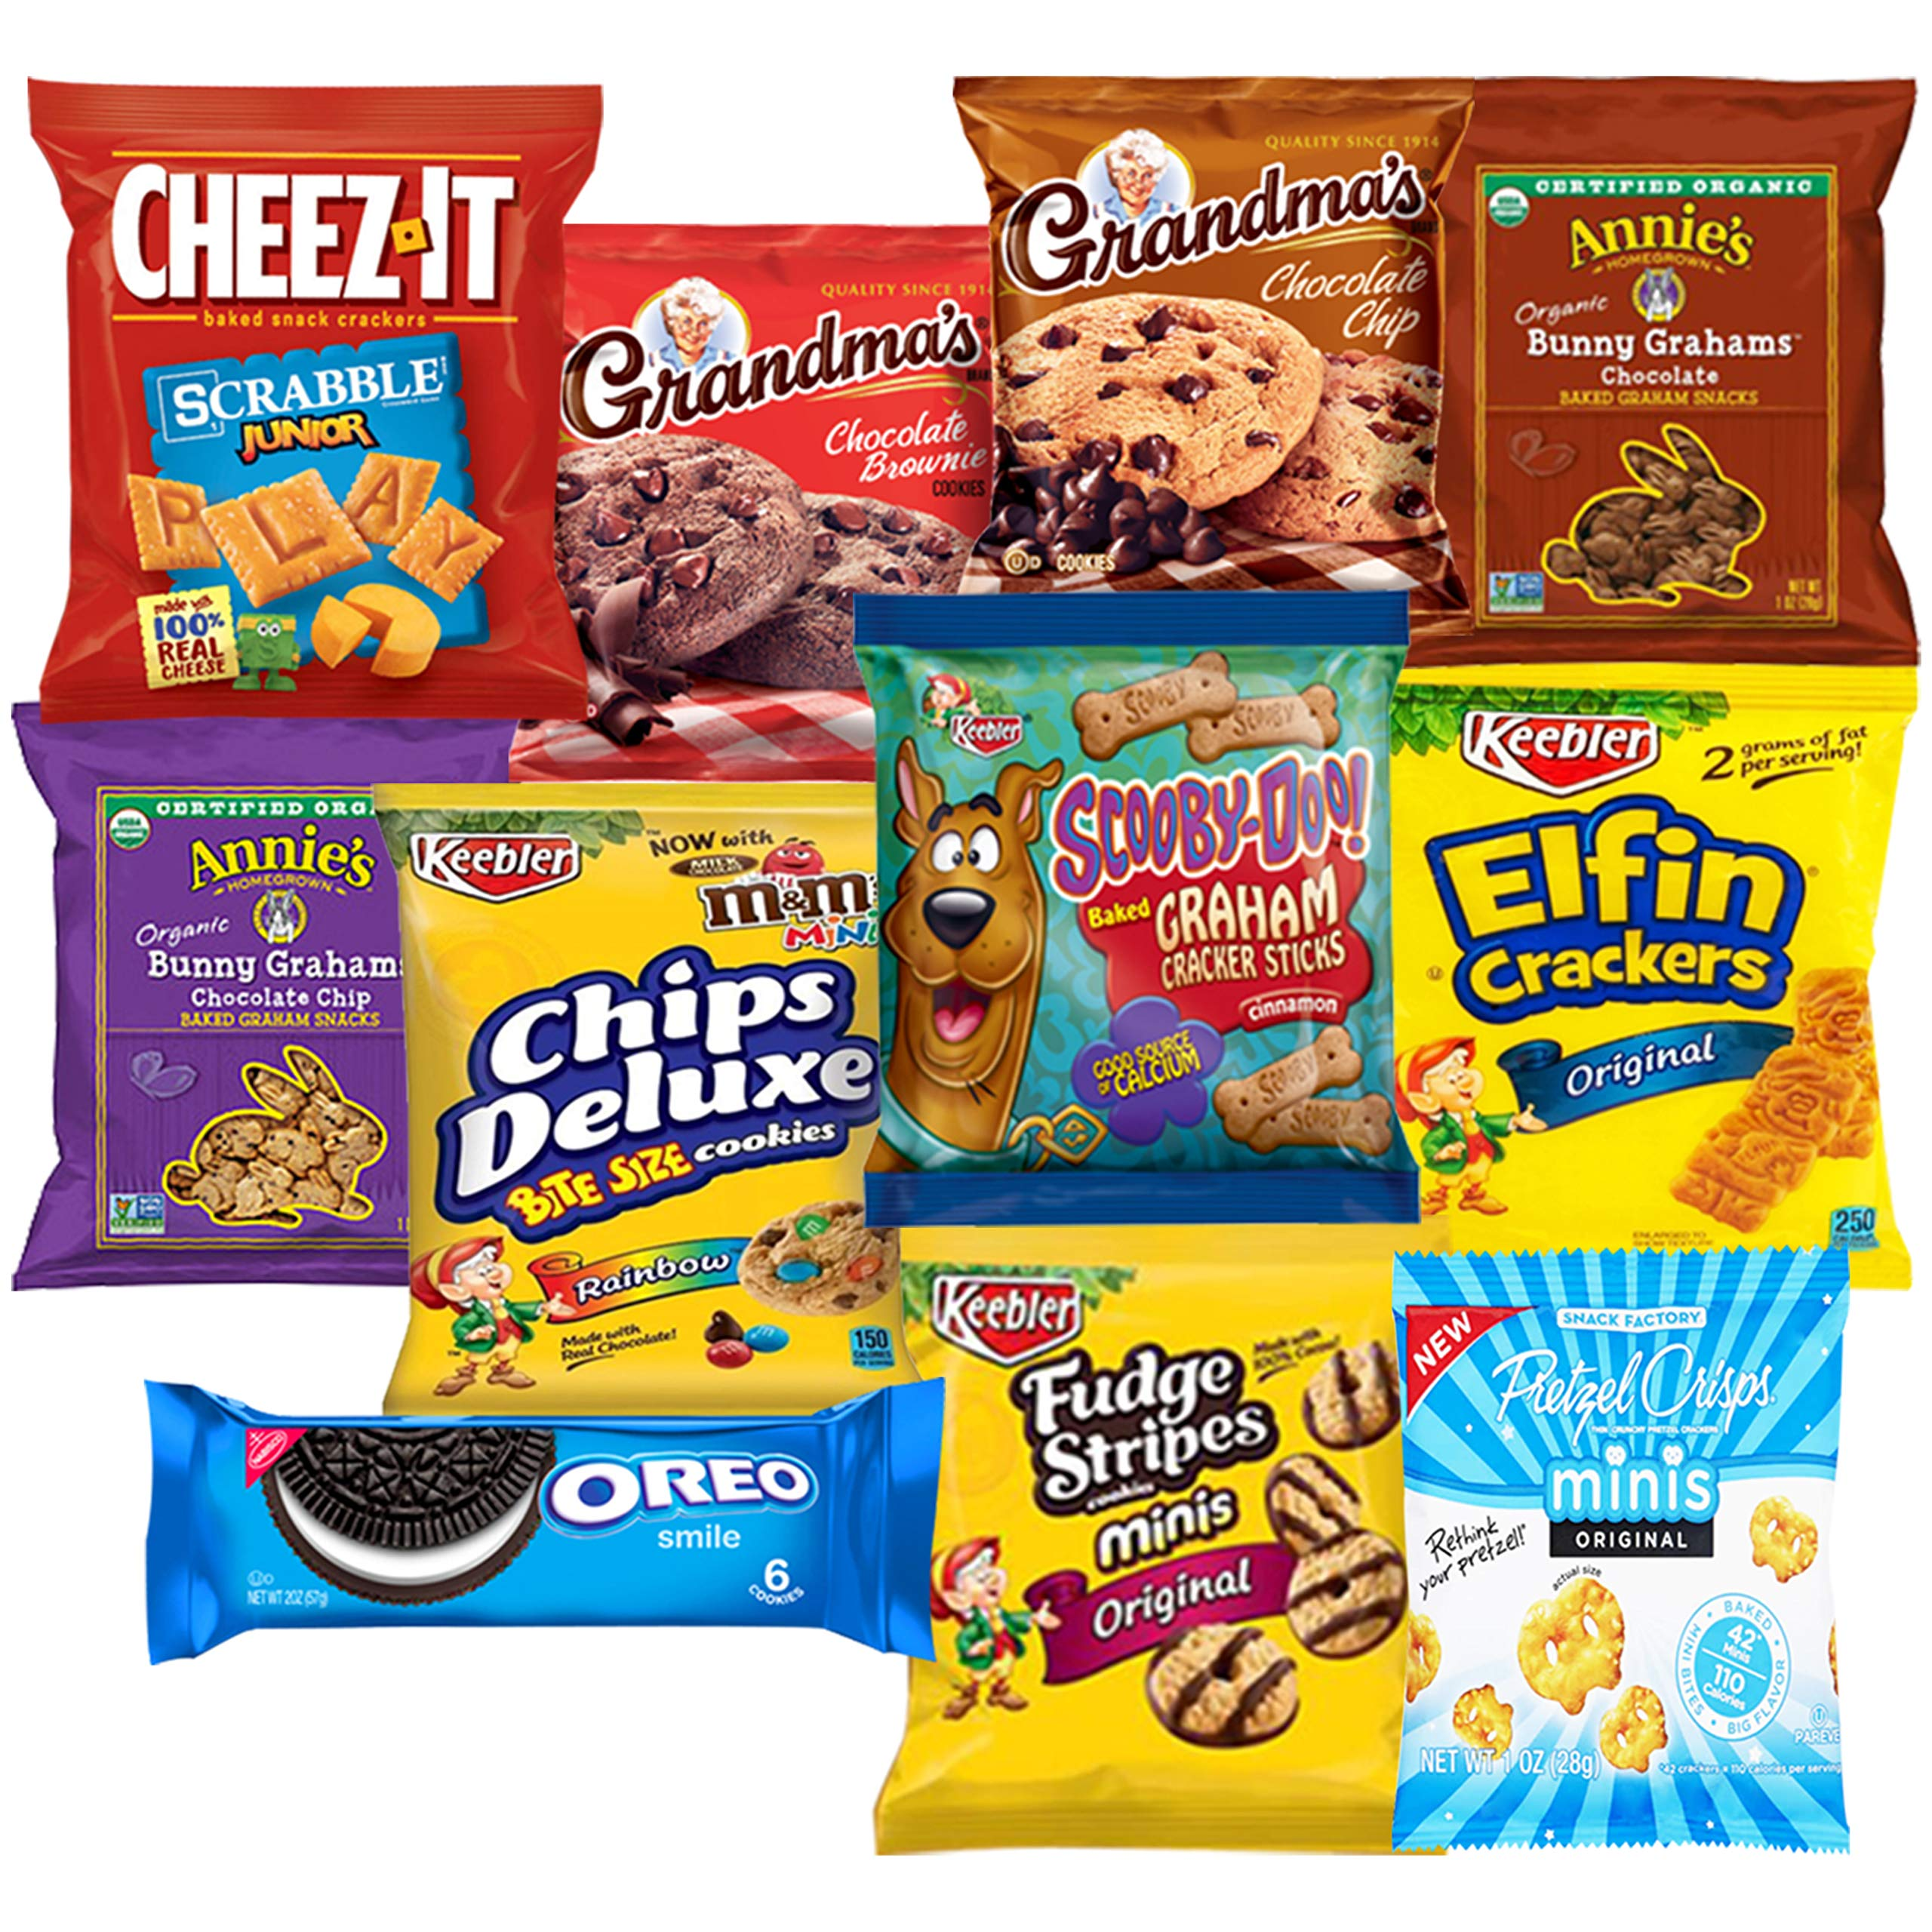 Snack Chest Care Package (40 Count) Variety Snacks Gift Box - College Students, Military, Work or Home - Over 3 Pounds of Chips Cookies & Candy! by Snack Chest (Image #2)